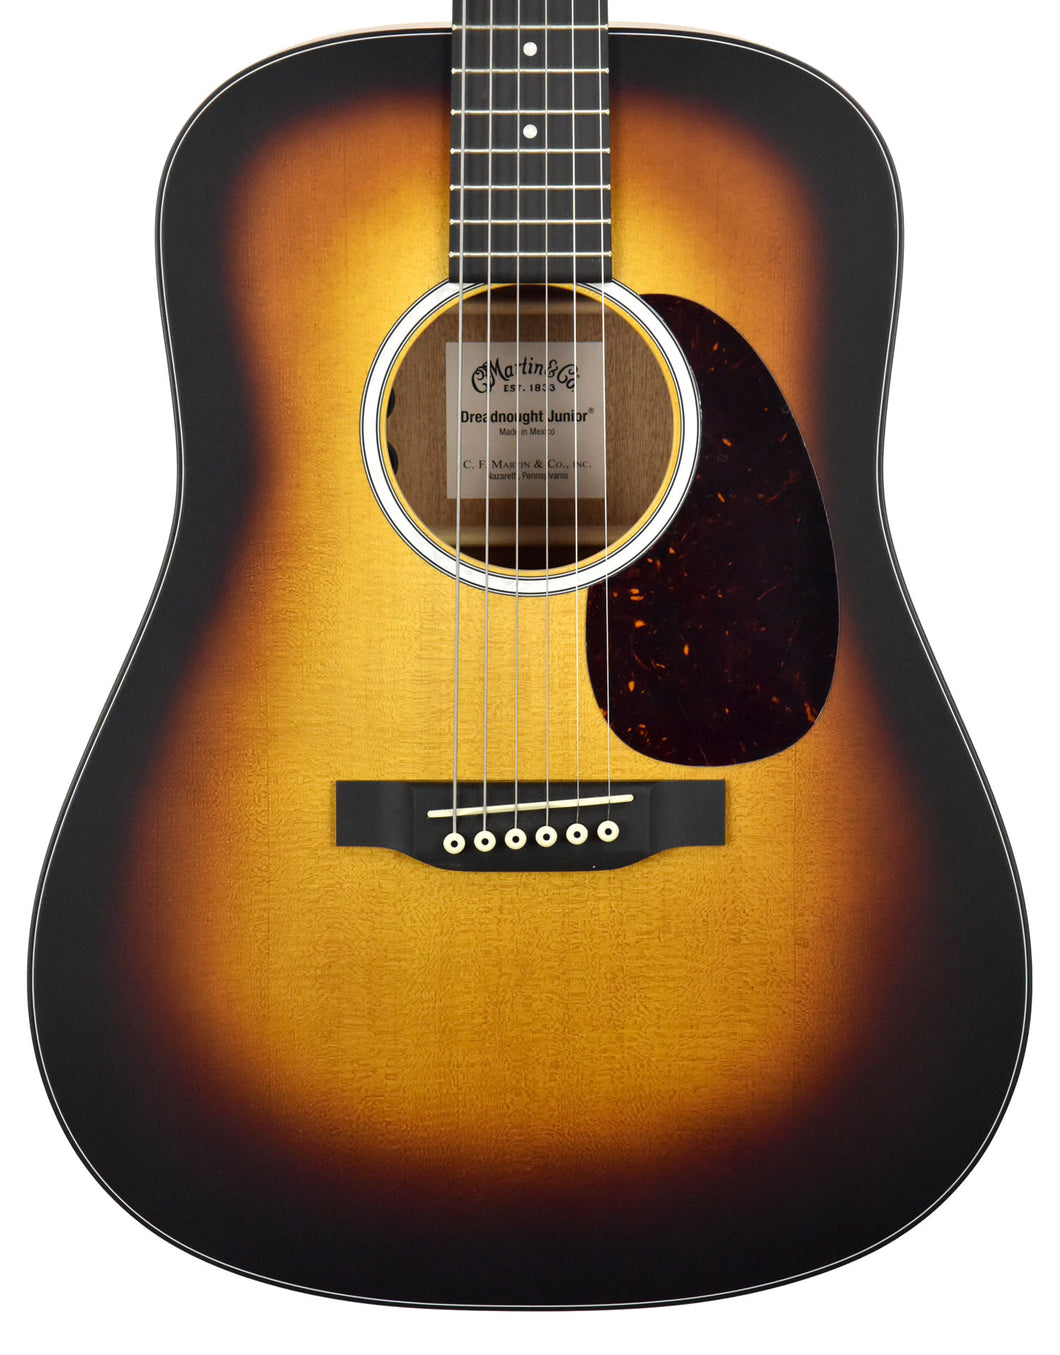 Martin DJr-10e Burst Acoustic Electric Guitar 2267315 - The Music Gallery